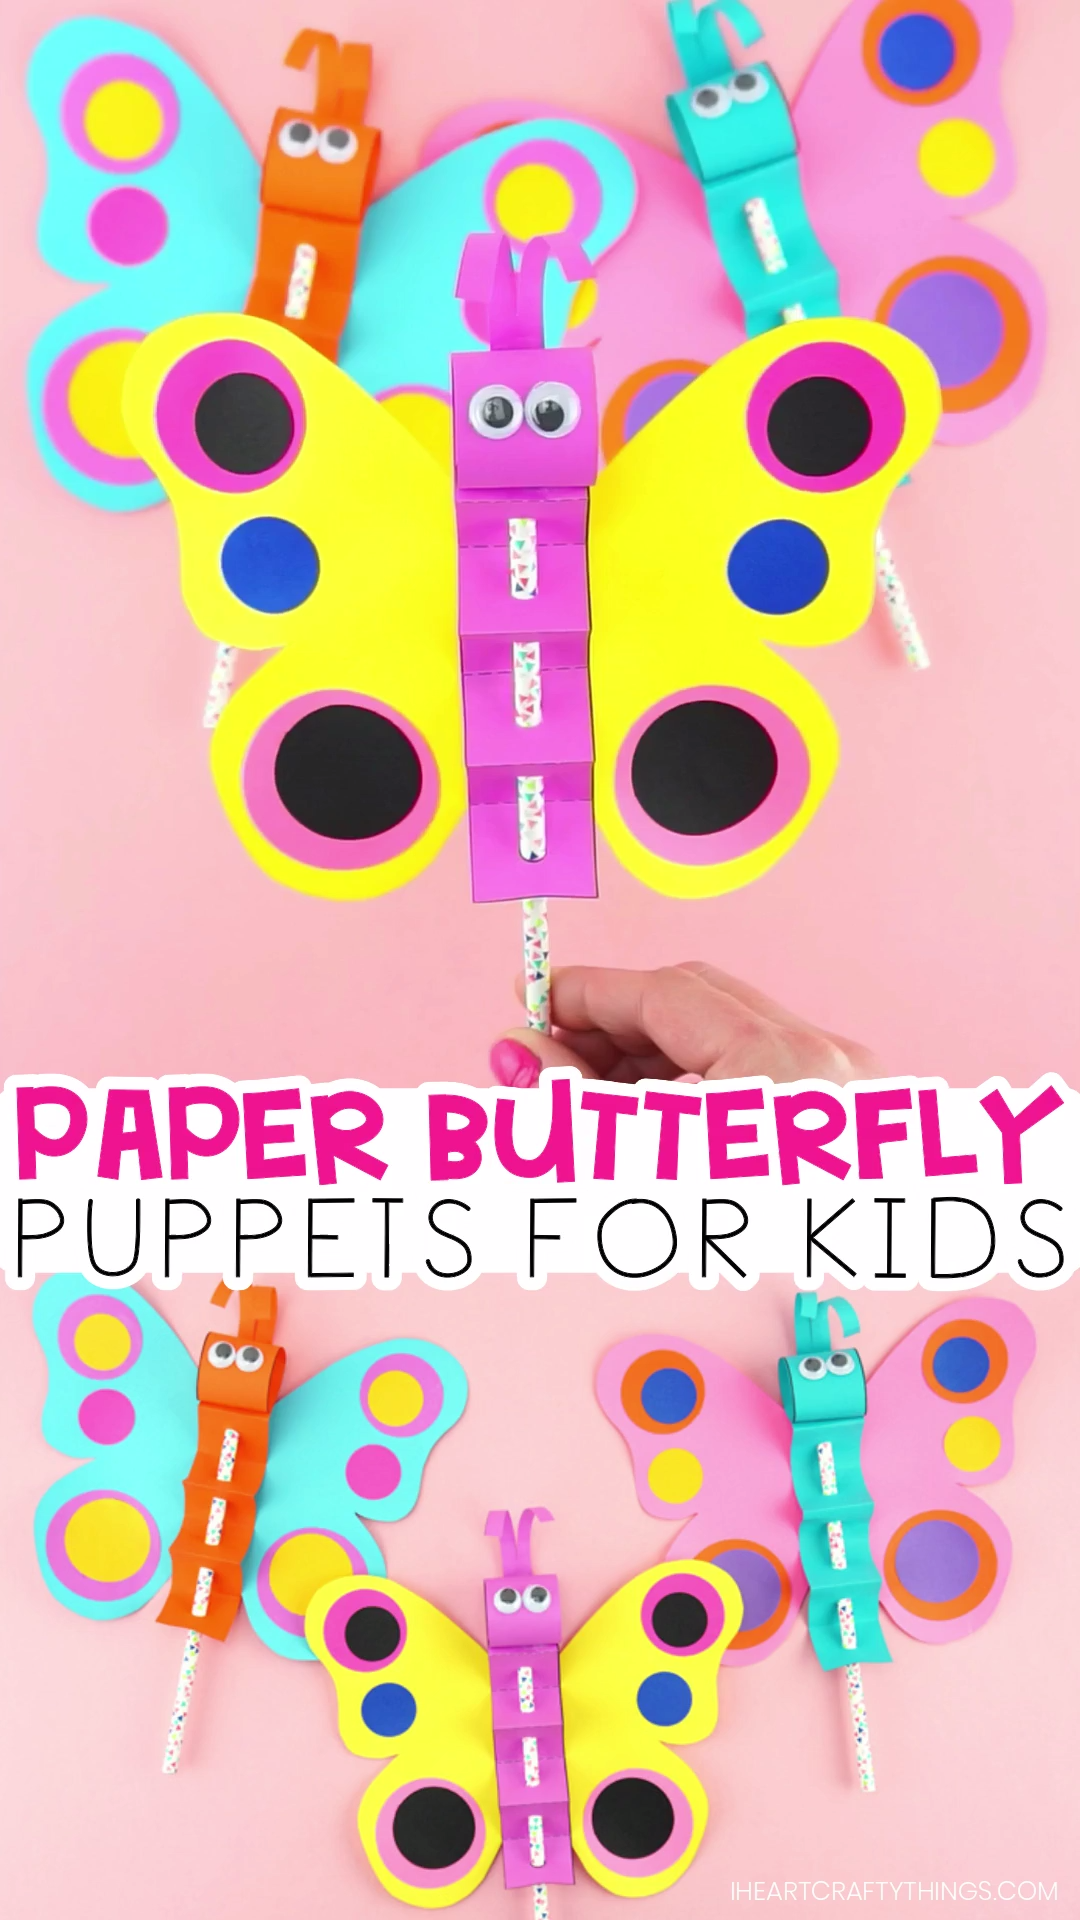 How to Make a Colorful Paper Butterfly Puppet #craftsforkids